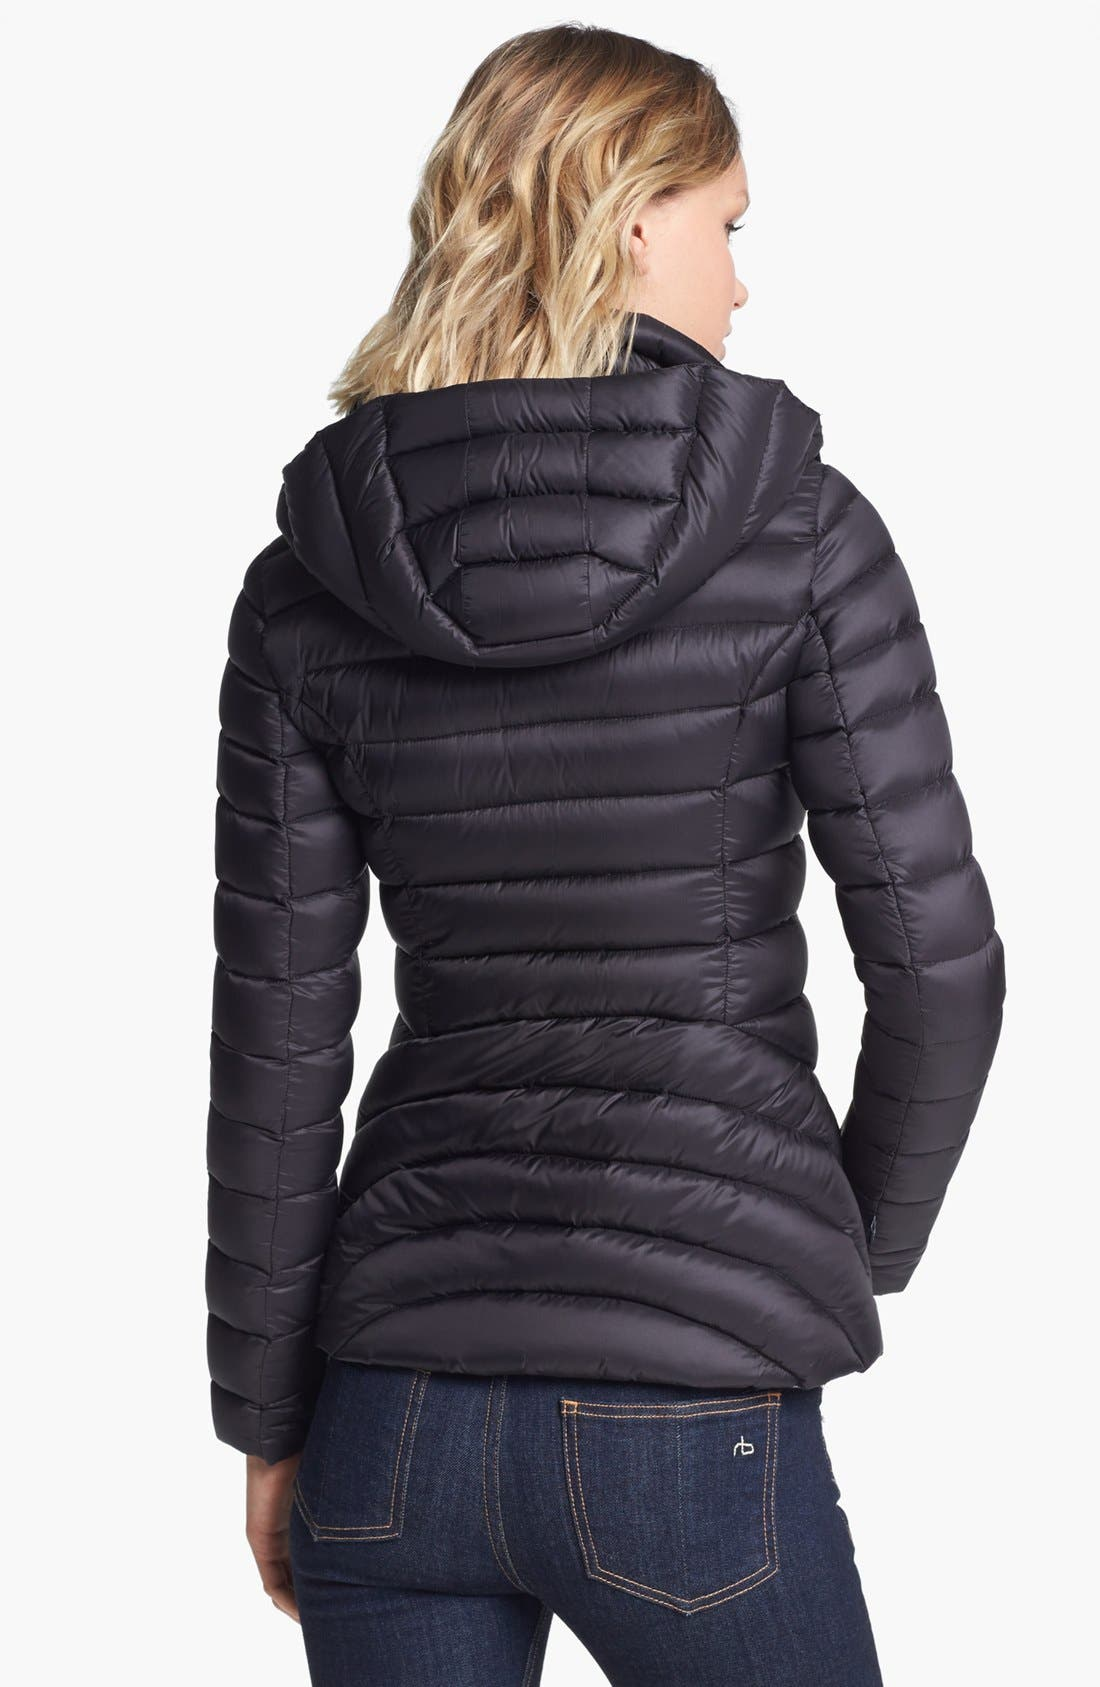 Alternate Image 2  - Soia & Kyo Hooded Packable Down Jacket with Front Insert